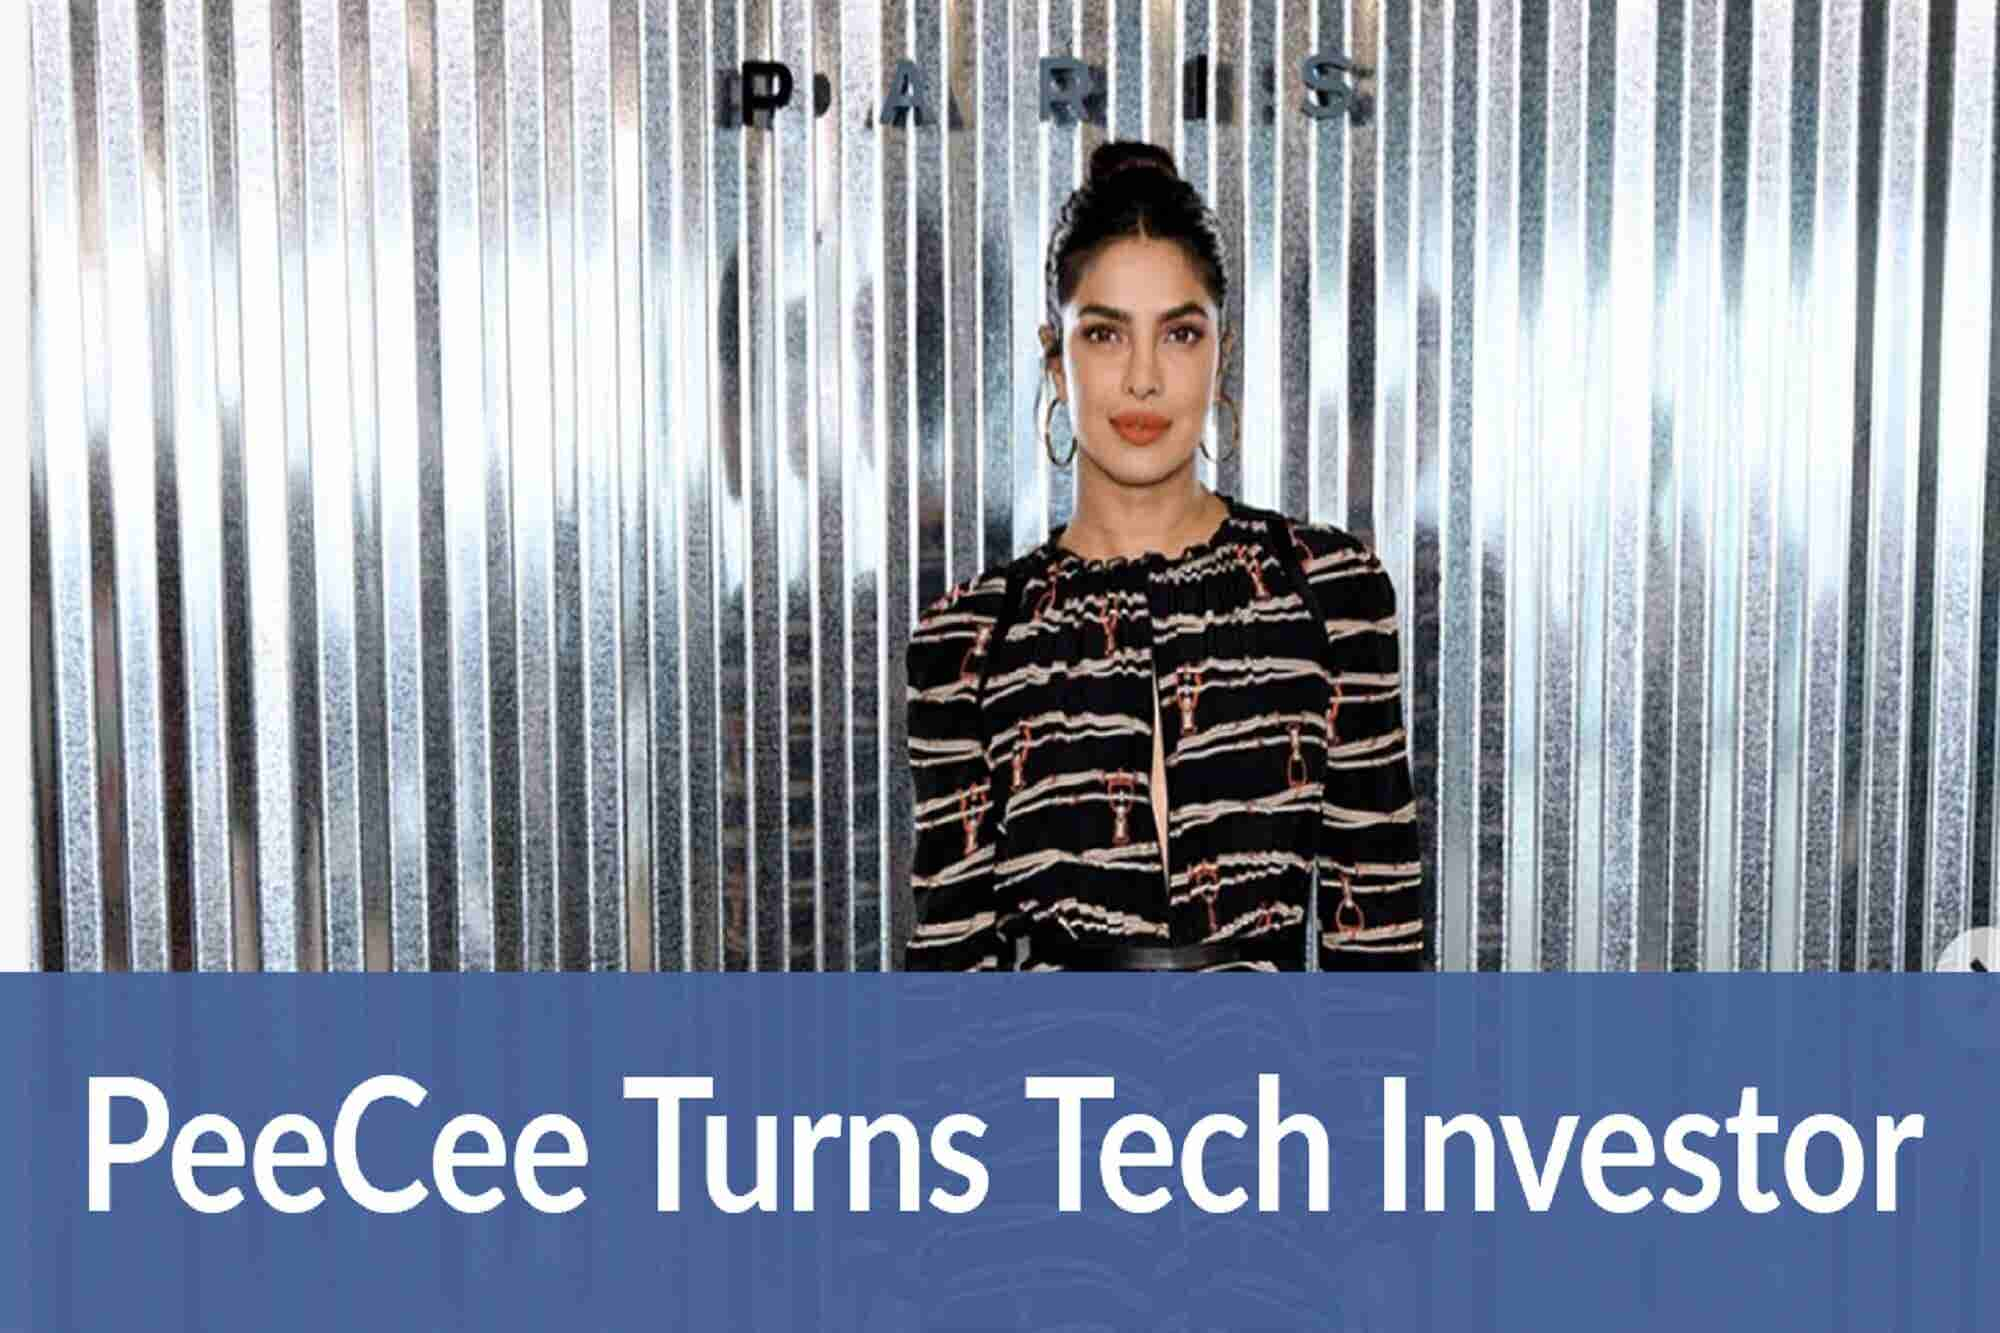 Priyanka Chopra Turns Investor & Chanda Kochhar is No More ICICI CEO: 4 Things to Know Today